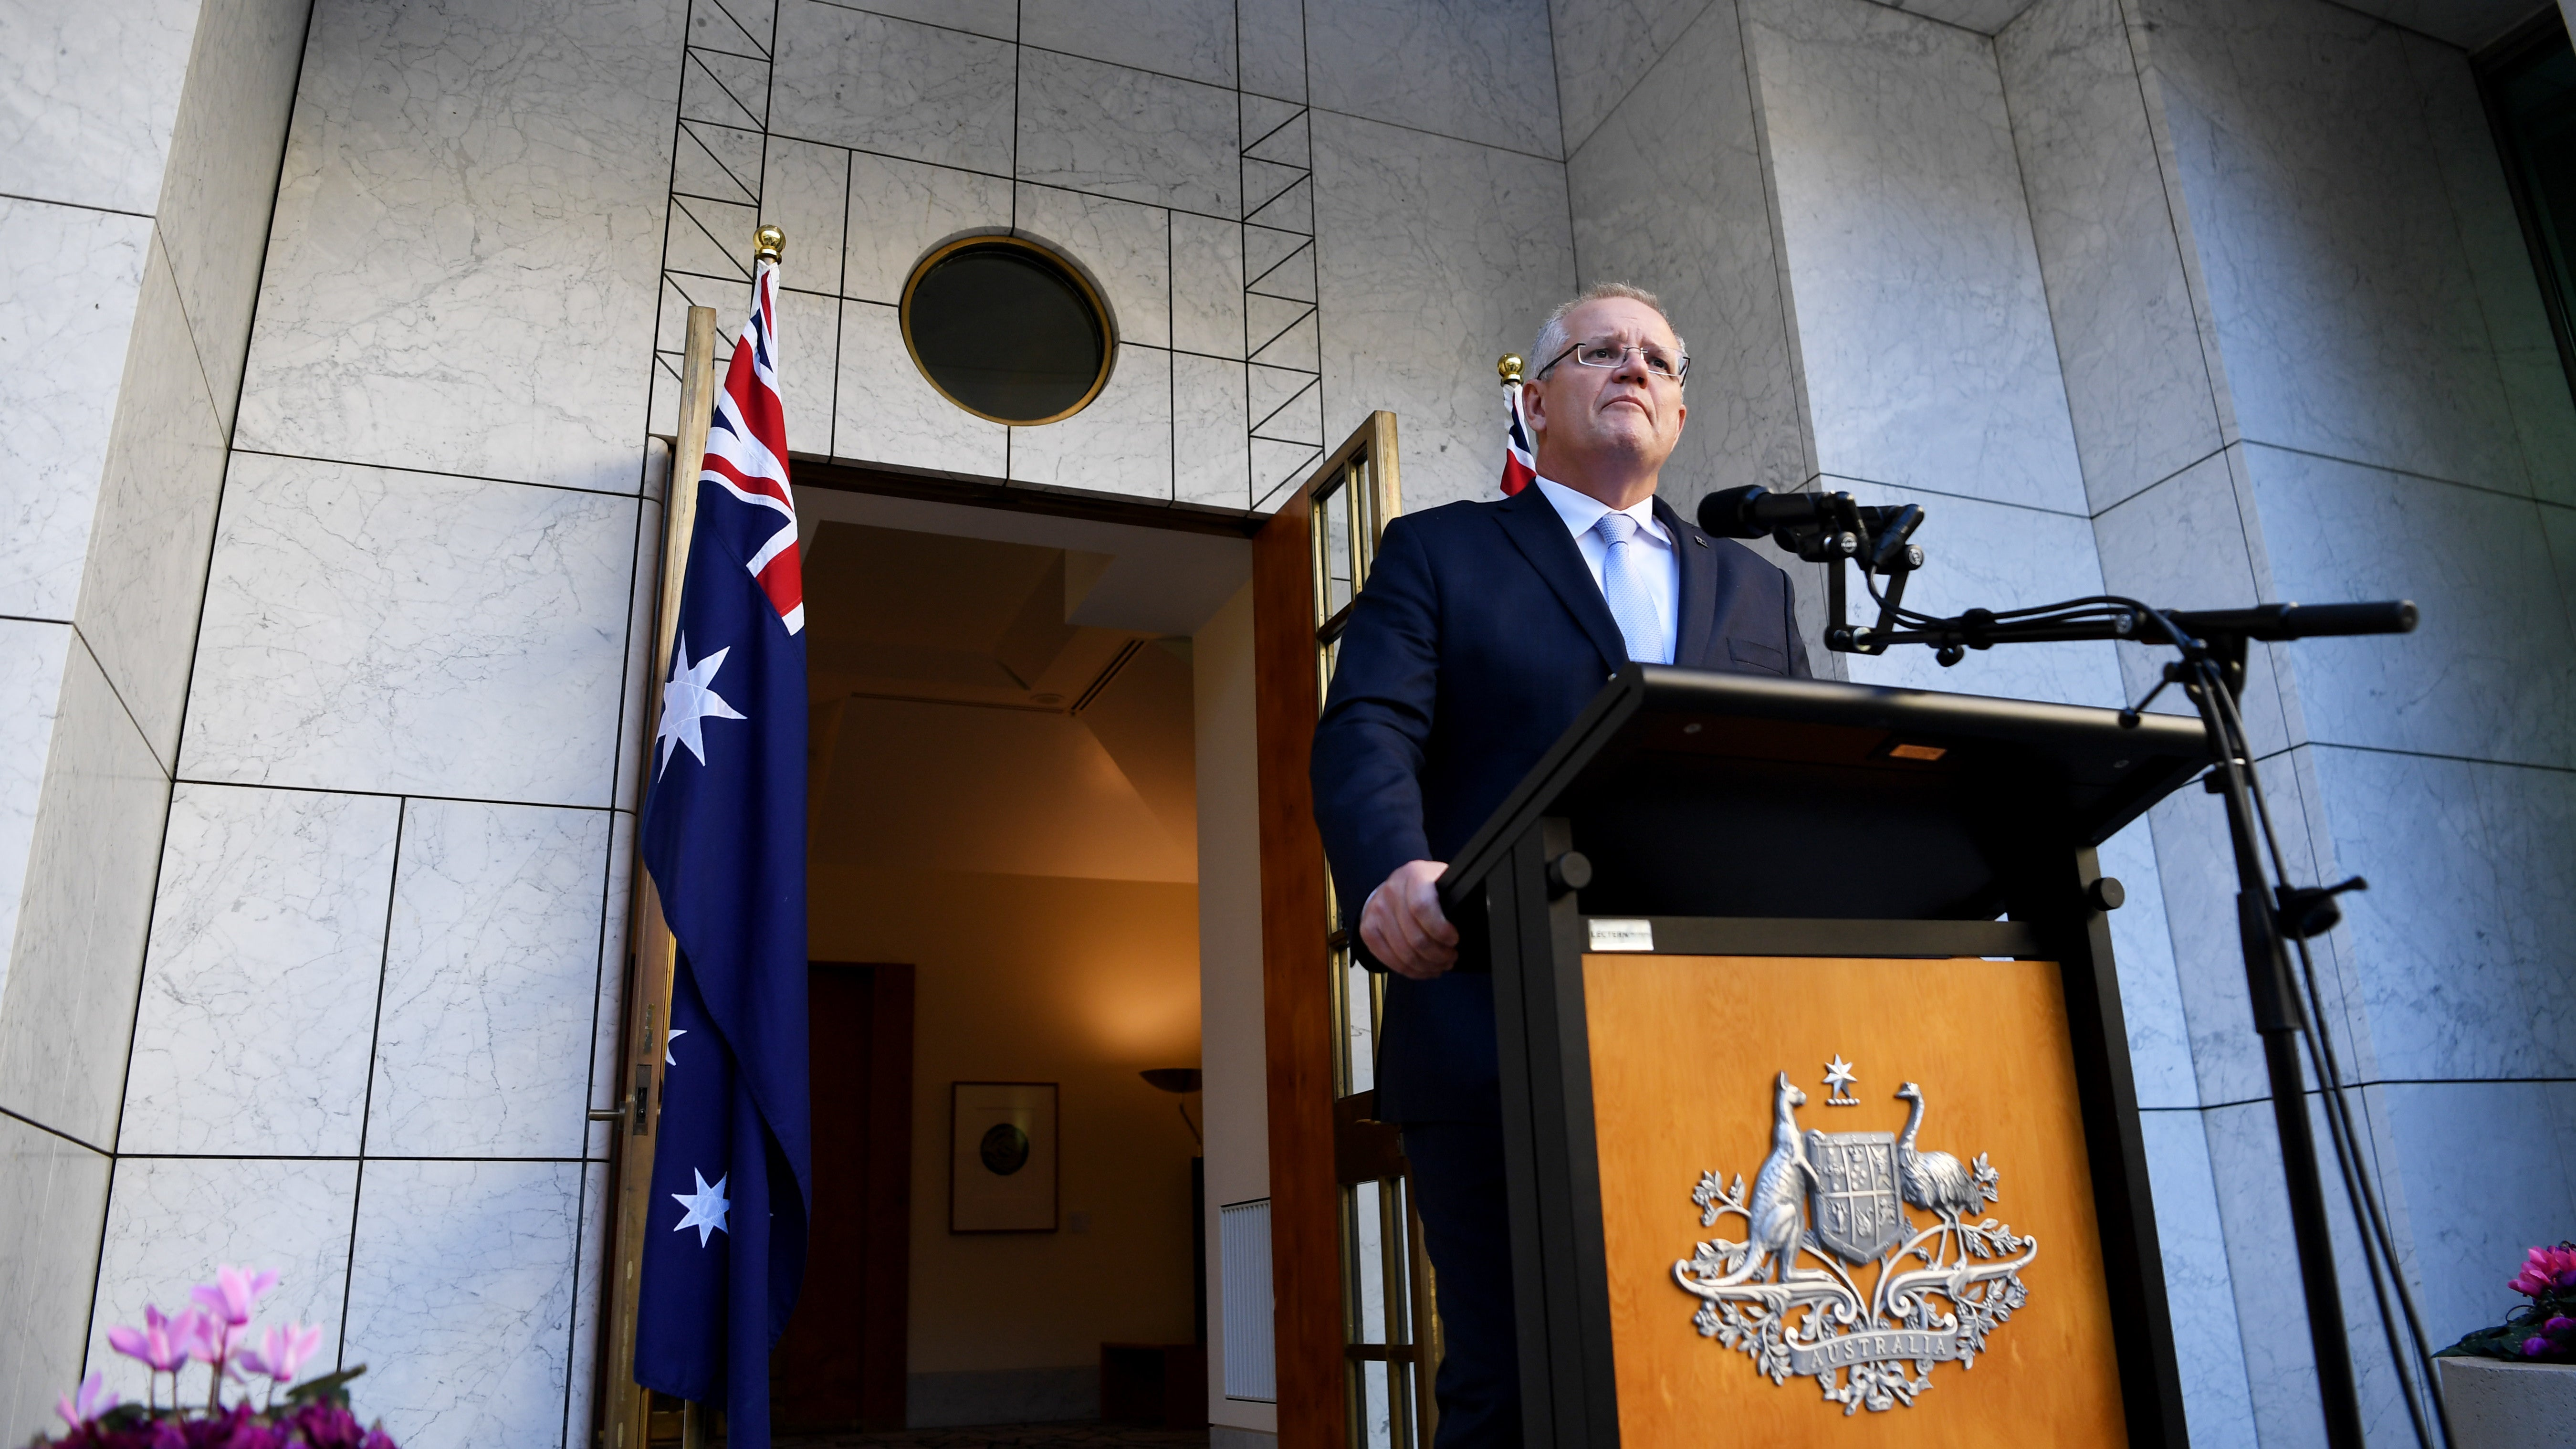 Australia's New Encryption Law Is Forcing Tech Companies To Help With Surveillance